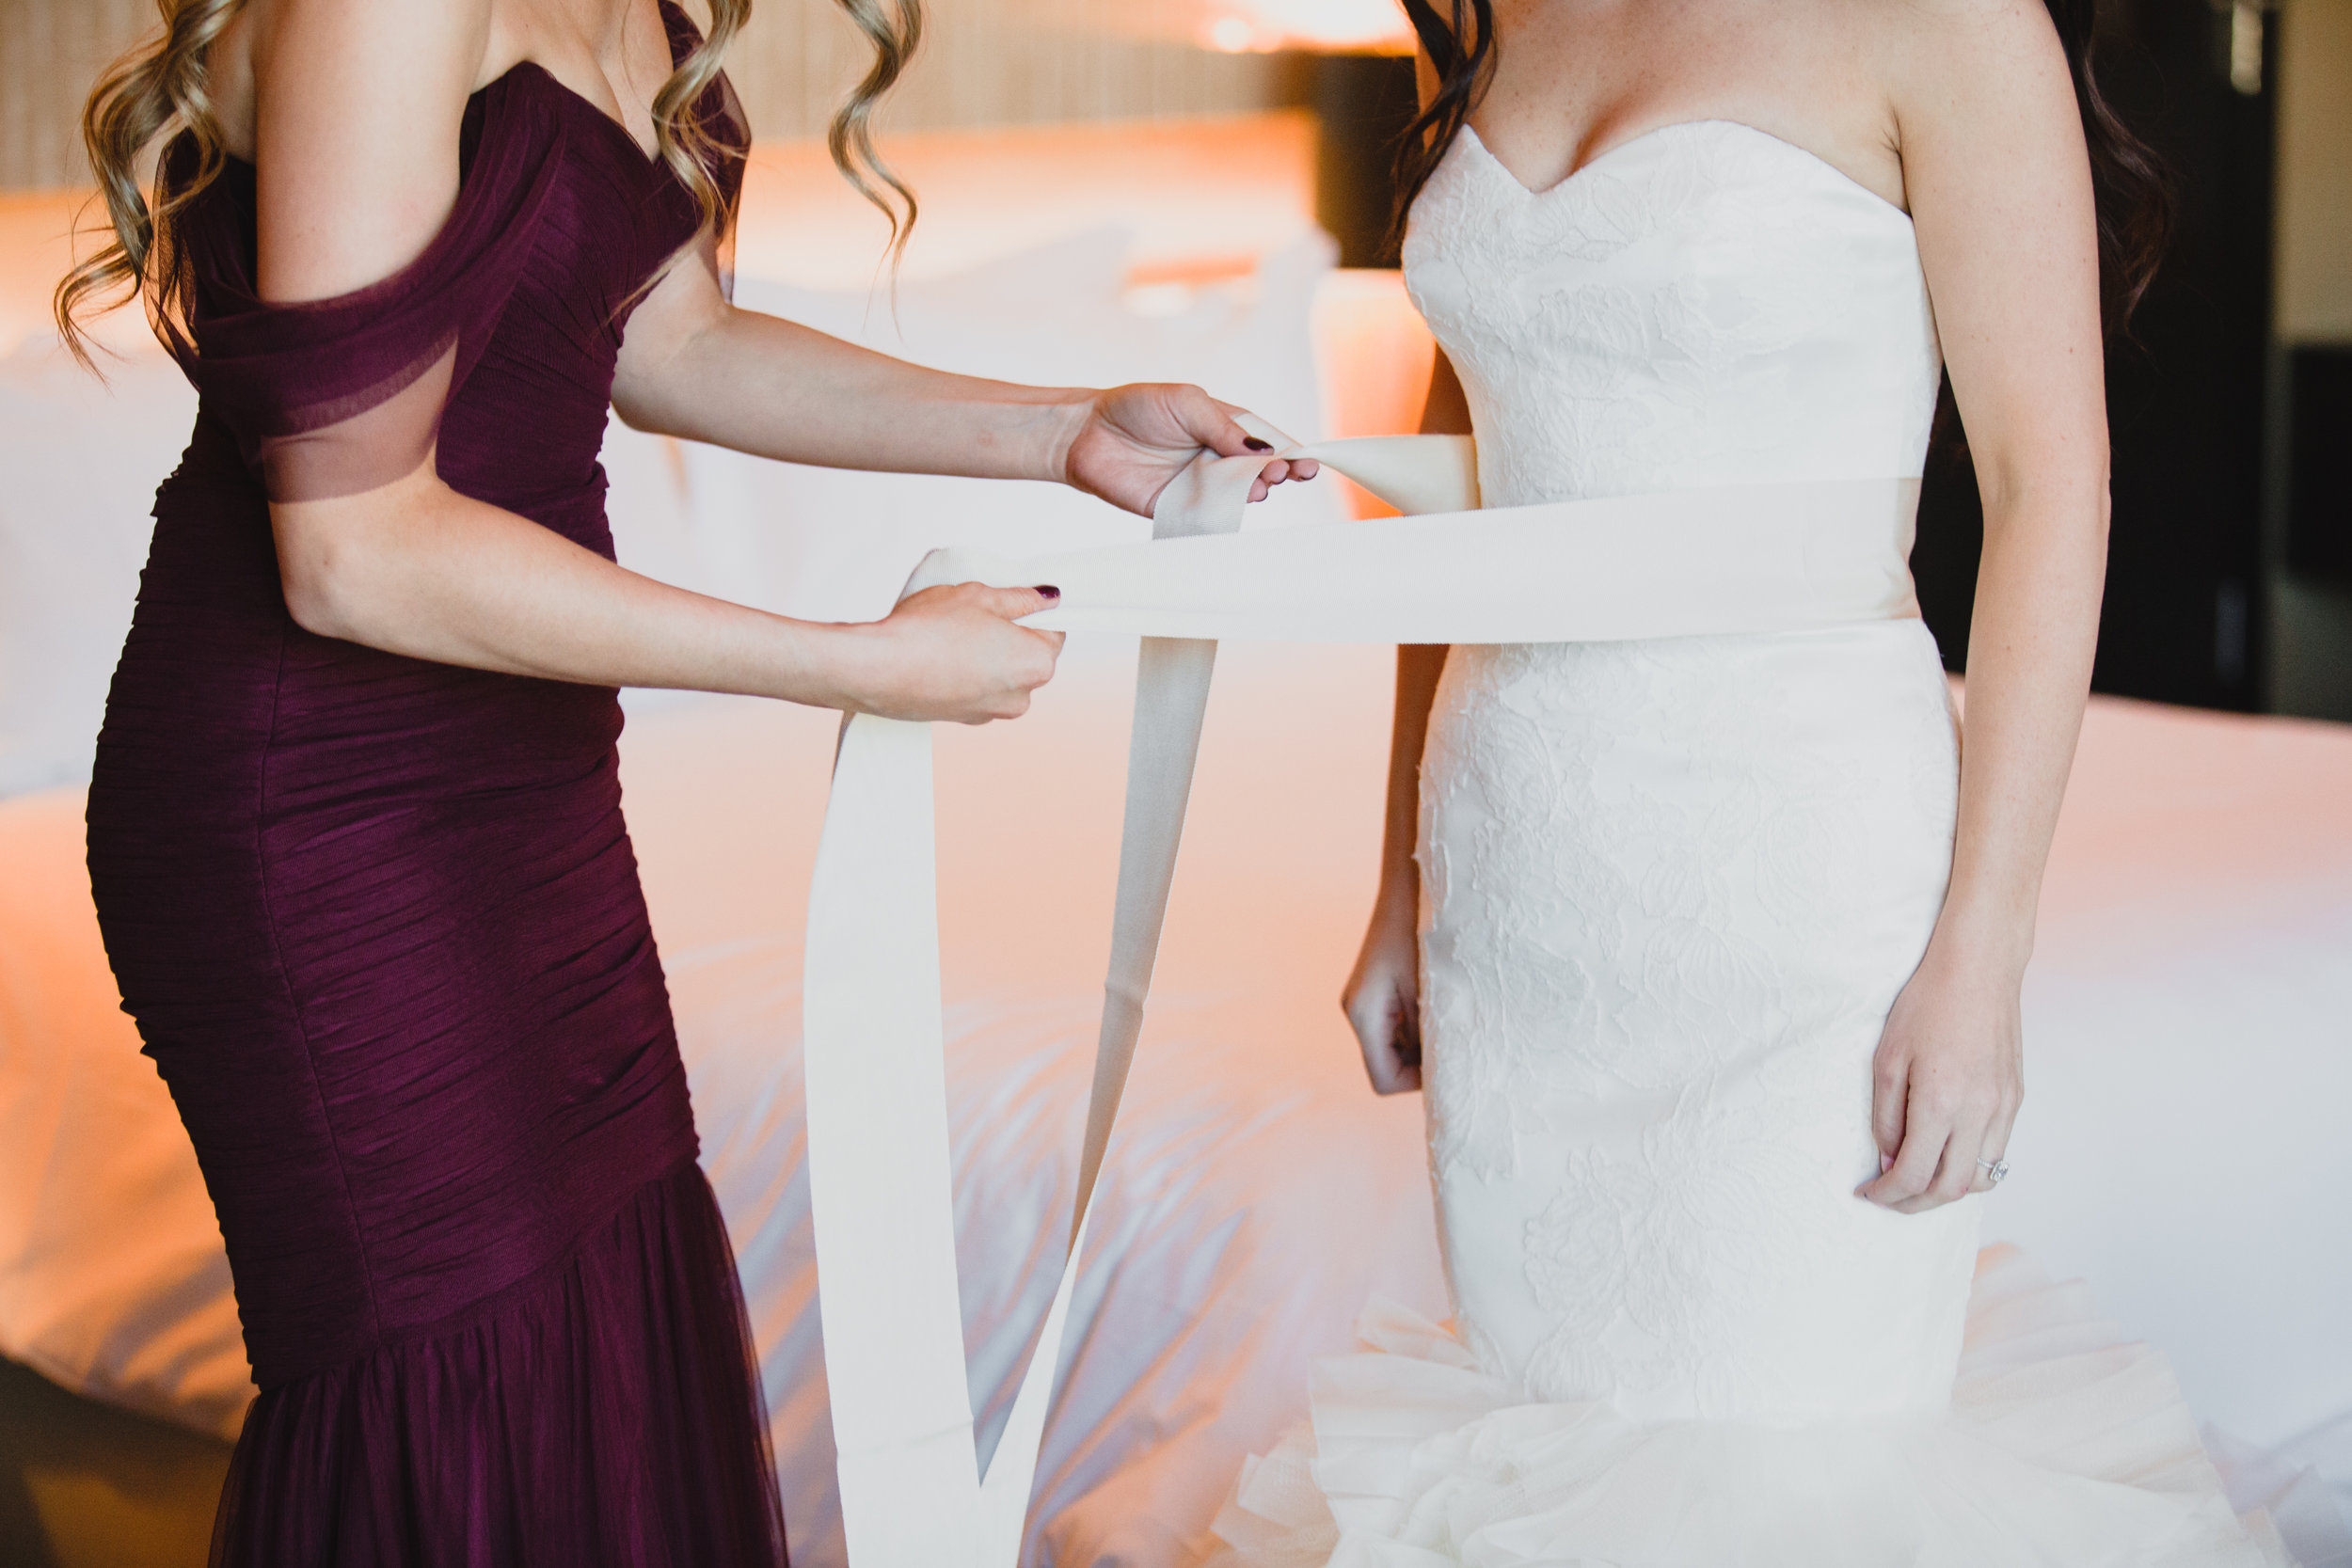 Tie on belt for the Vera Wang Wedding Dress.Luxury wedding at the Mandarin Oriental with a color scheme of white, blush, and pops of wine red produced by Las Vegas Wedding Planner Andrea Eppolito with photos by Stephen Salazar Photography.